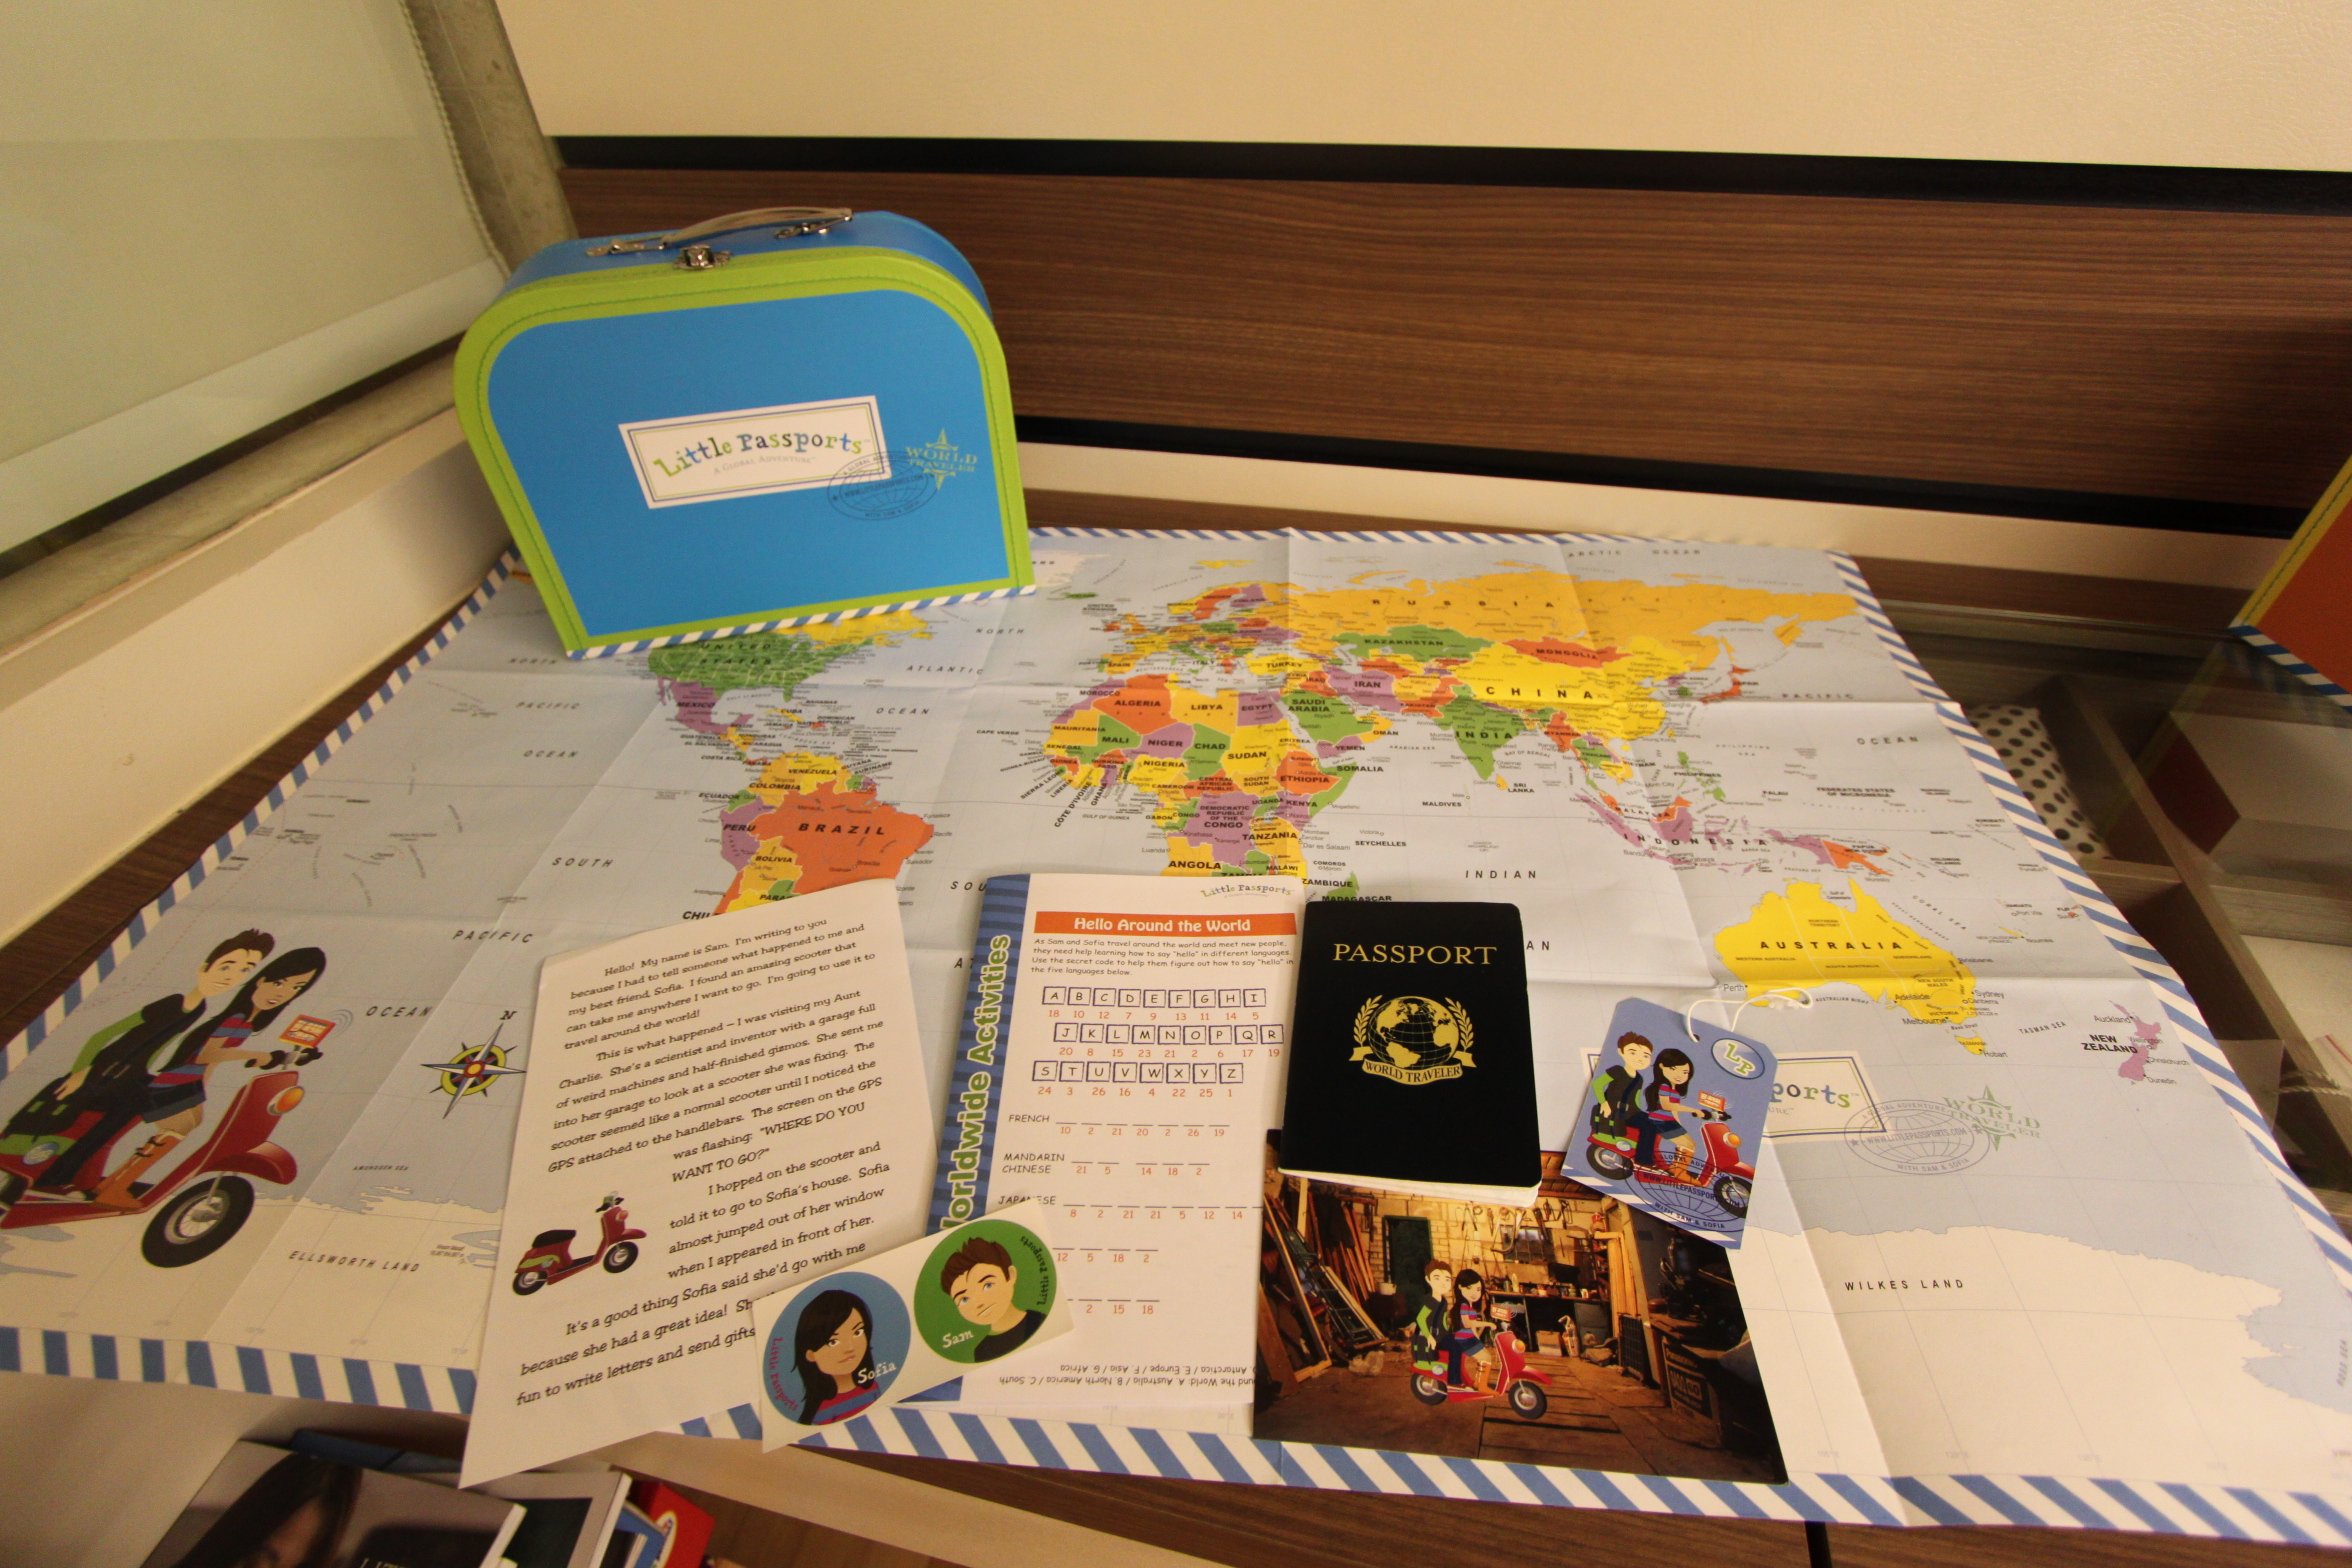 Giveaway Amp Review Little Passports Early Explorers And World Edition The Making Of Young